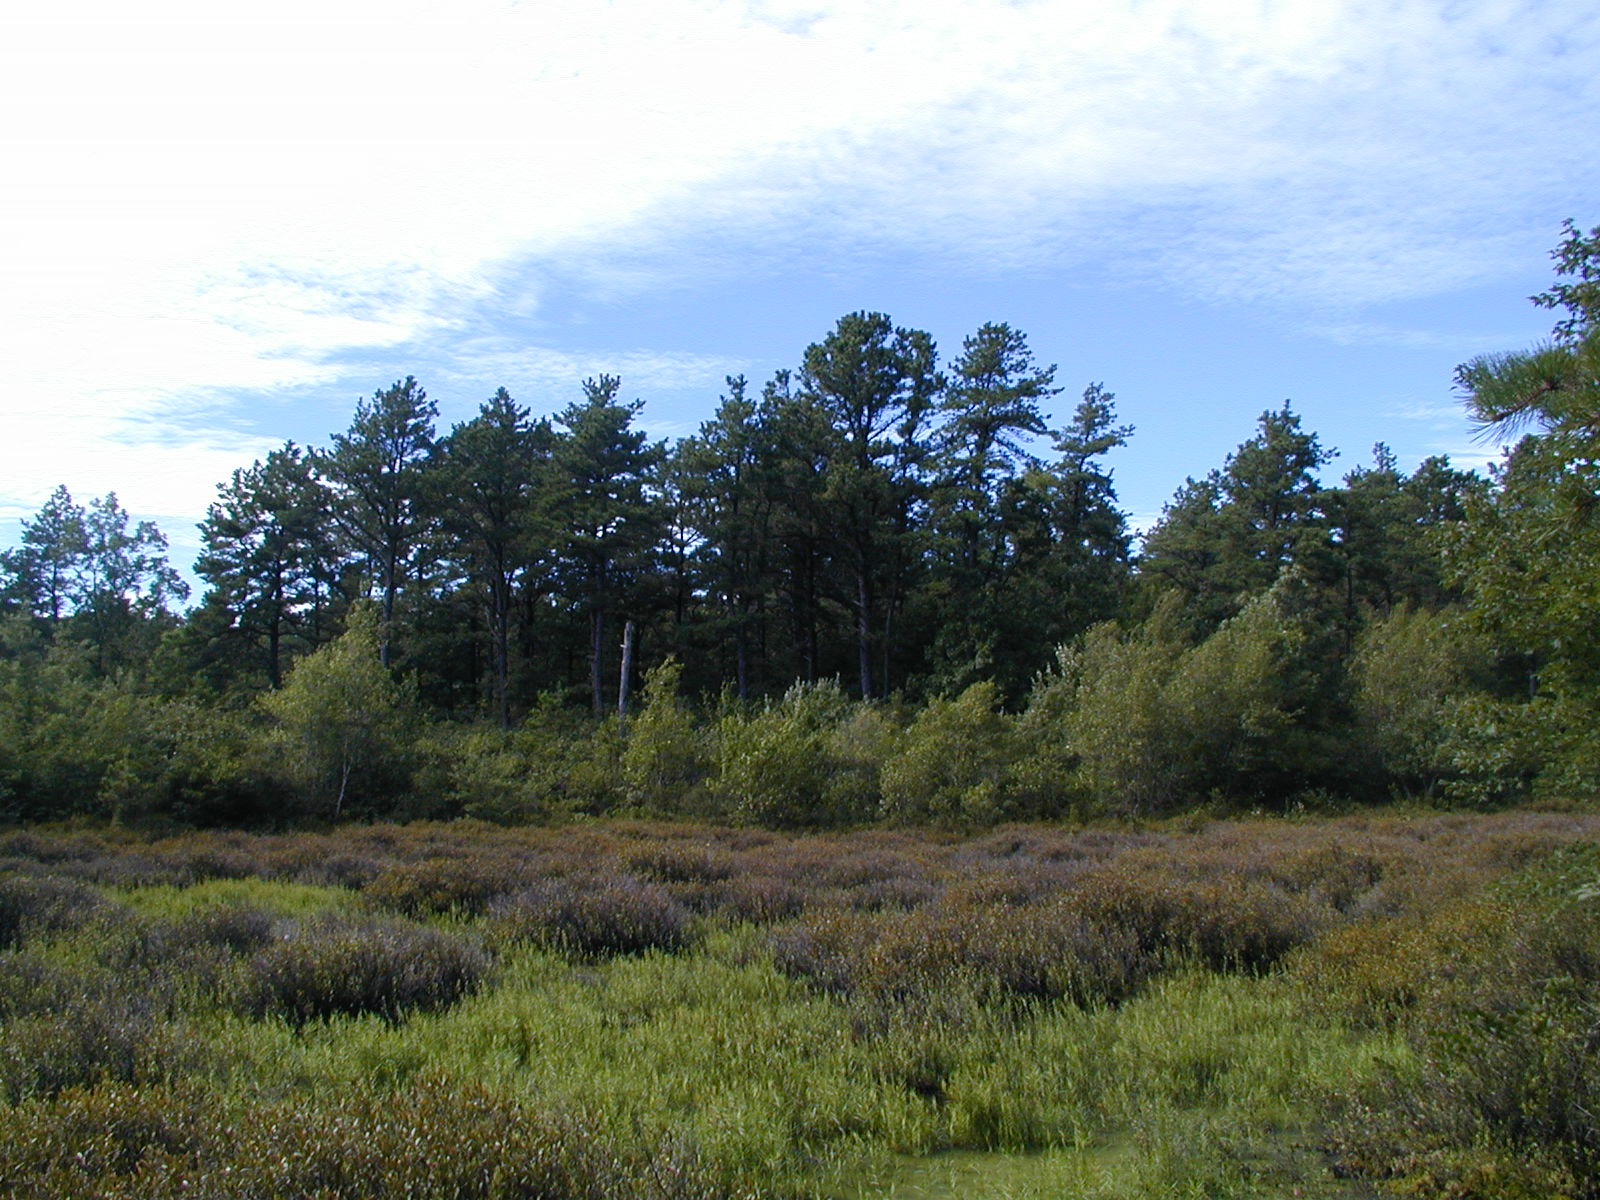 waquoitbayreserve.org